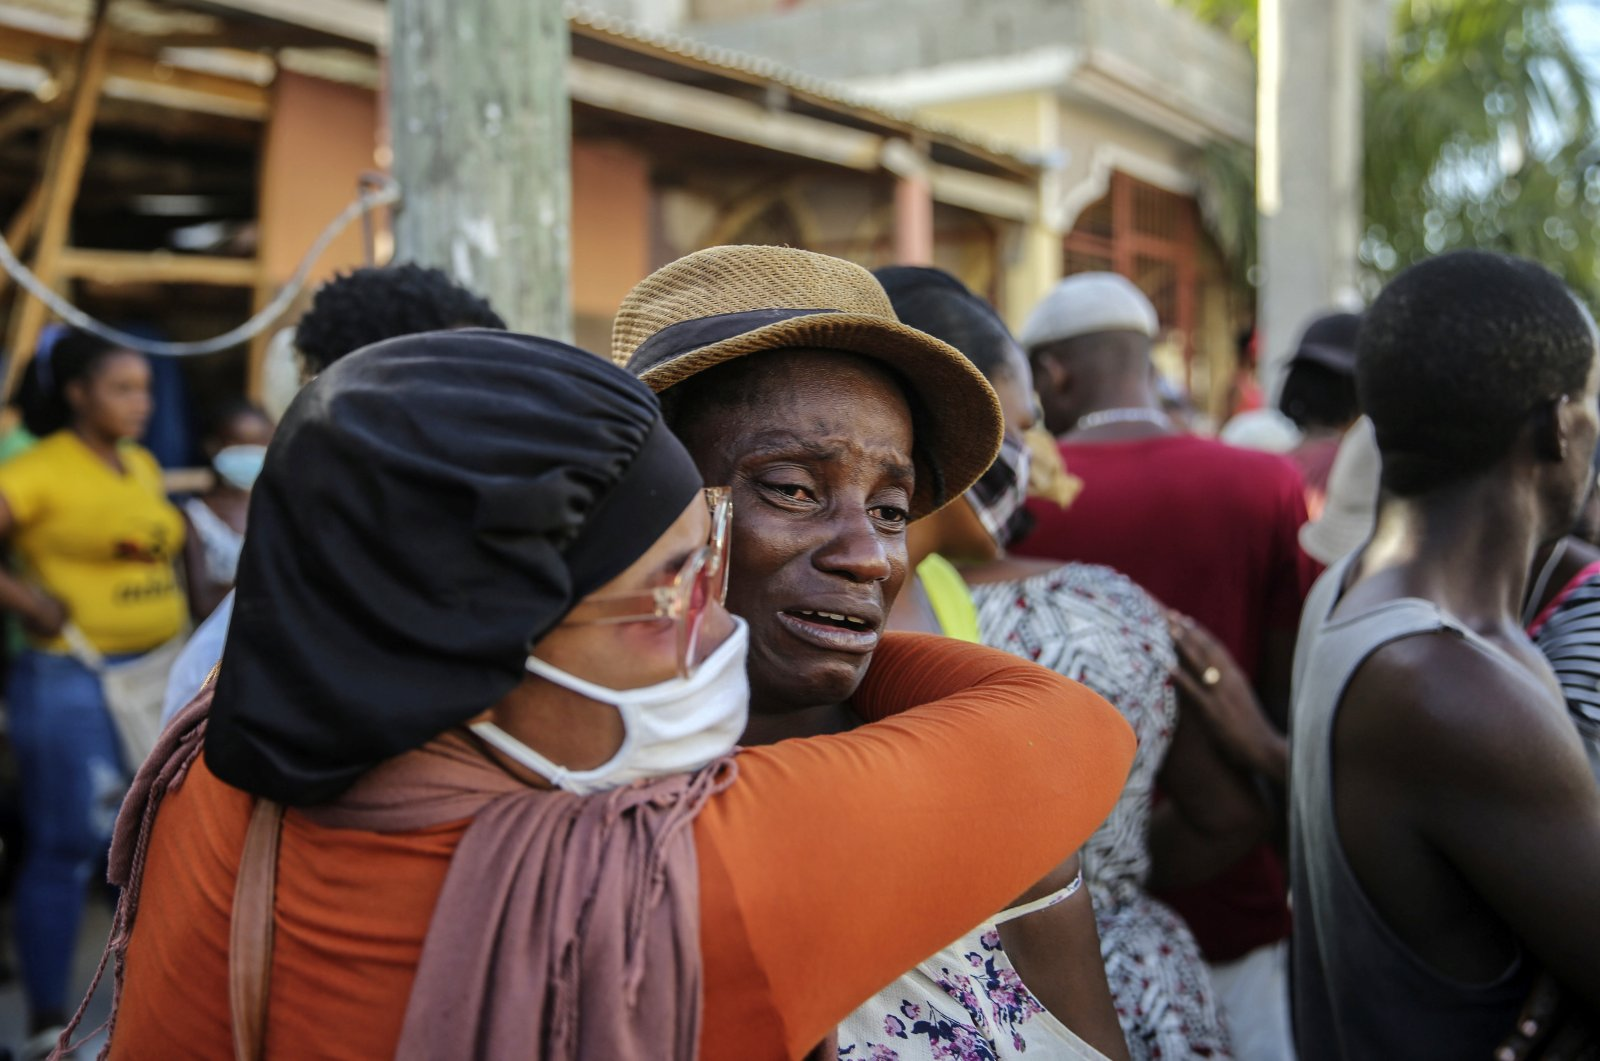 People cry during the search for those who are still missing in a house destroyed by the earthquake in Les Cayes, Haiti, Sunday, Aug. 15, 2021.  (AP Photo)